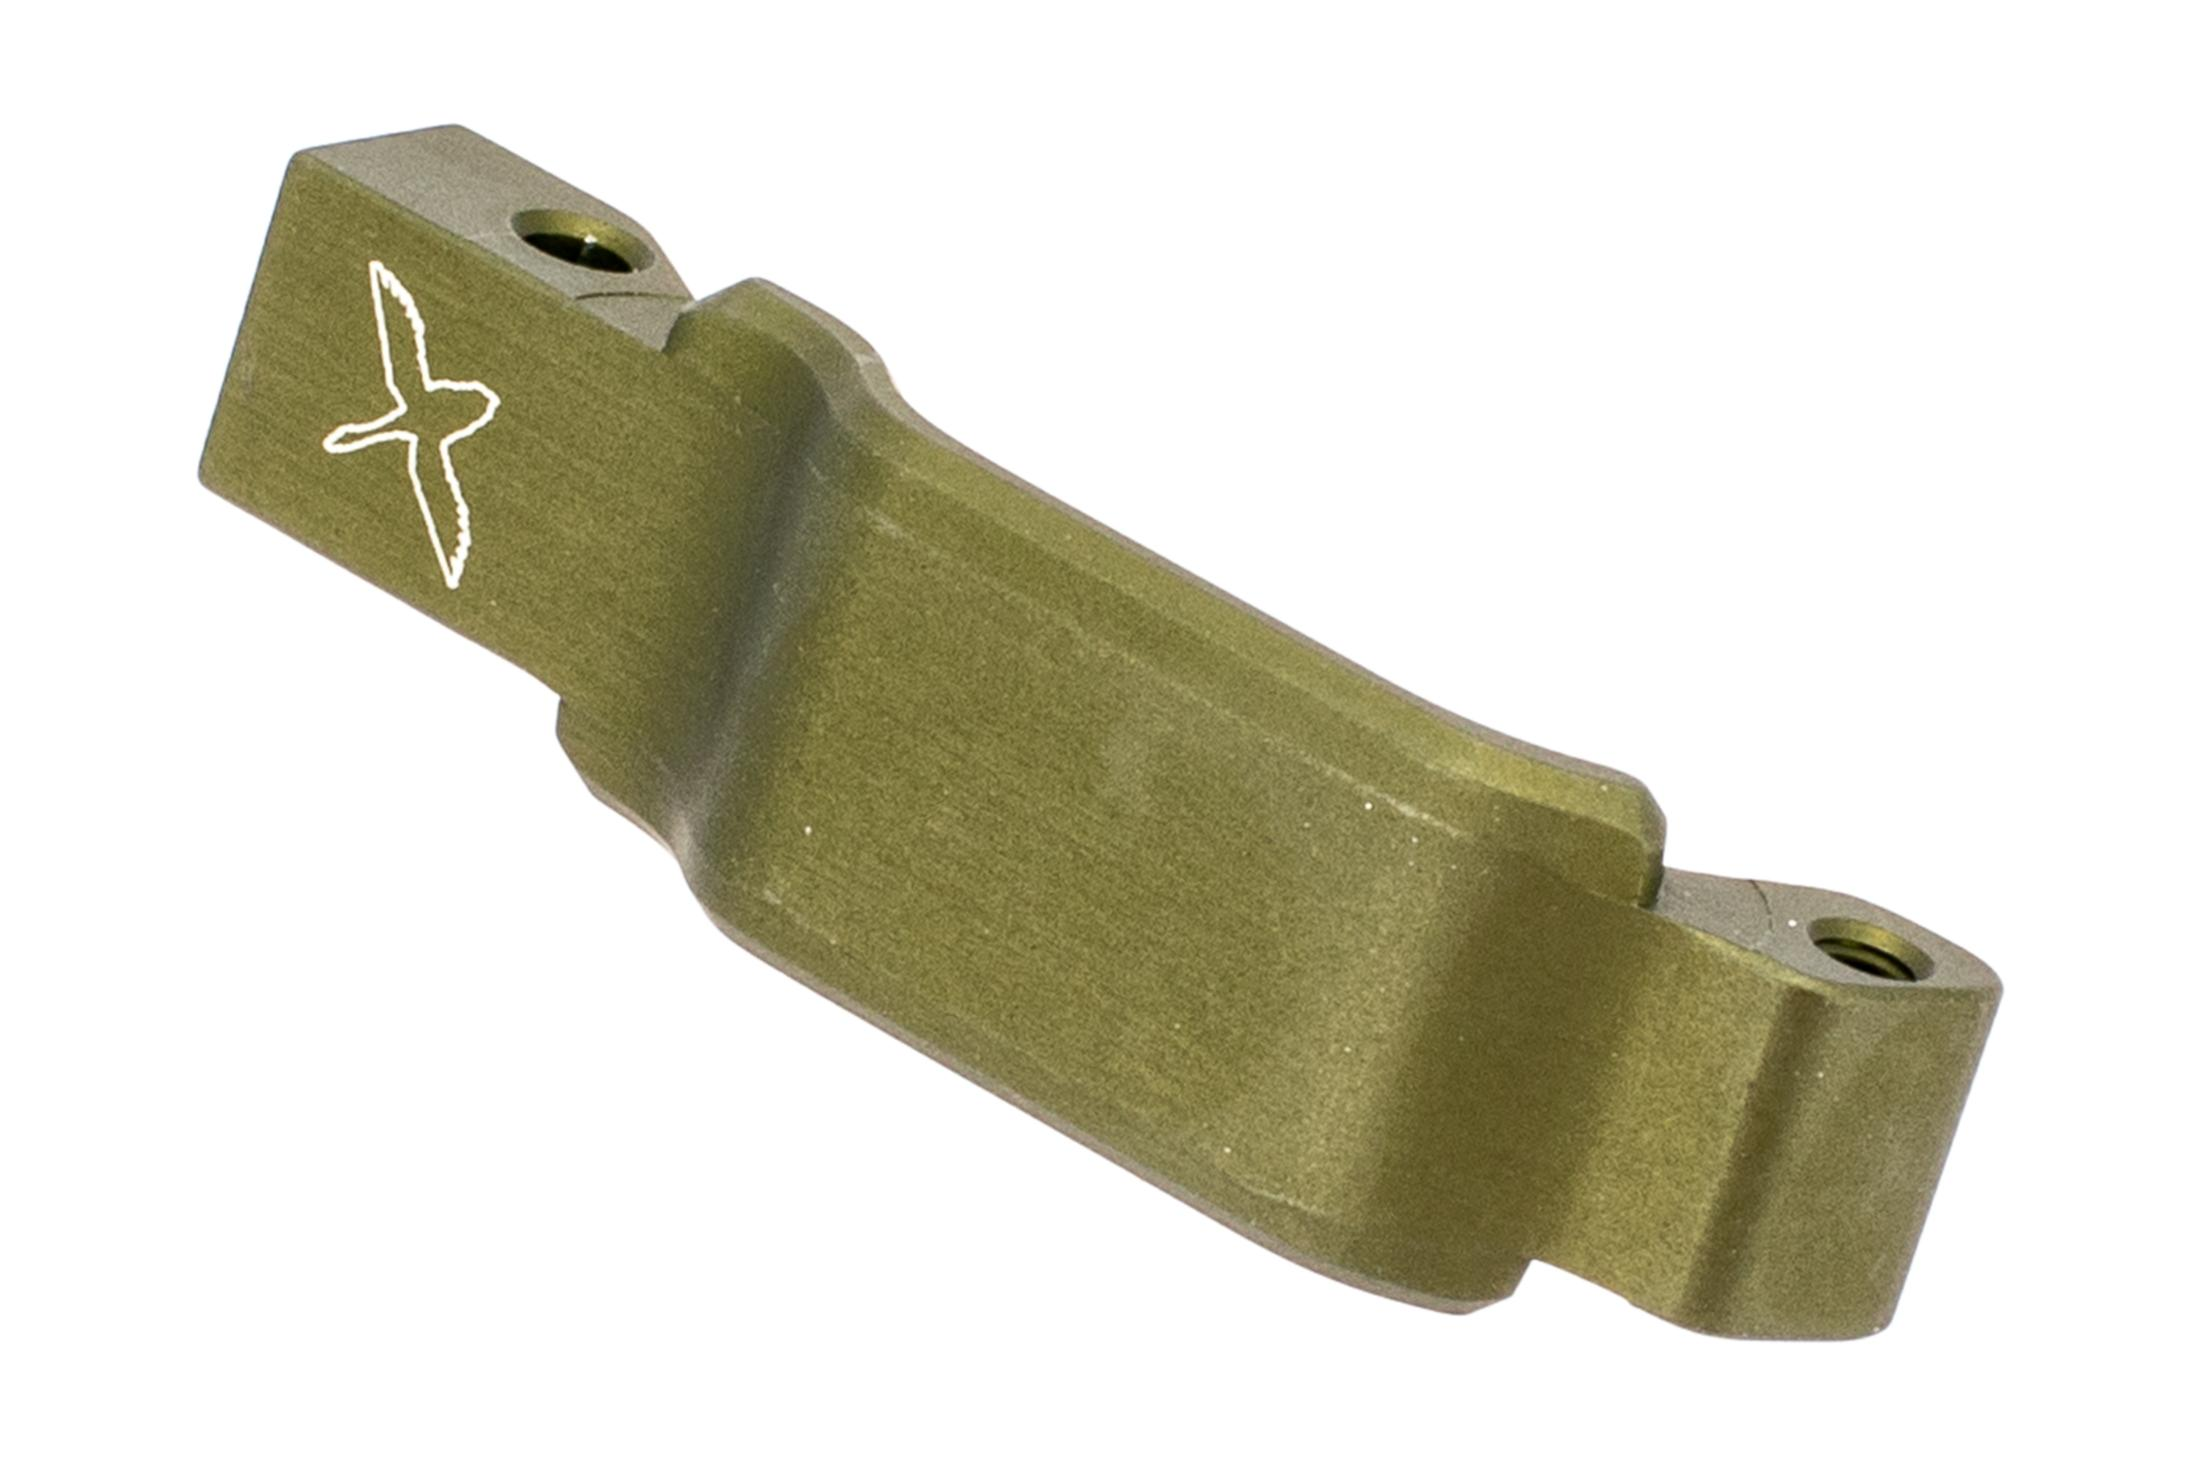 Forward Controls Design Winterized trigger guard with odg anodized finish